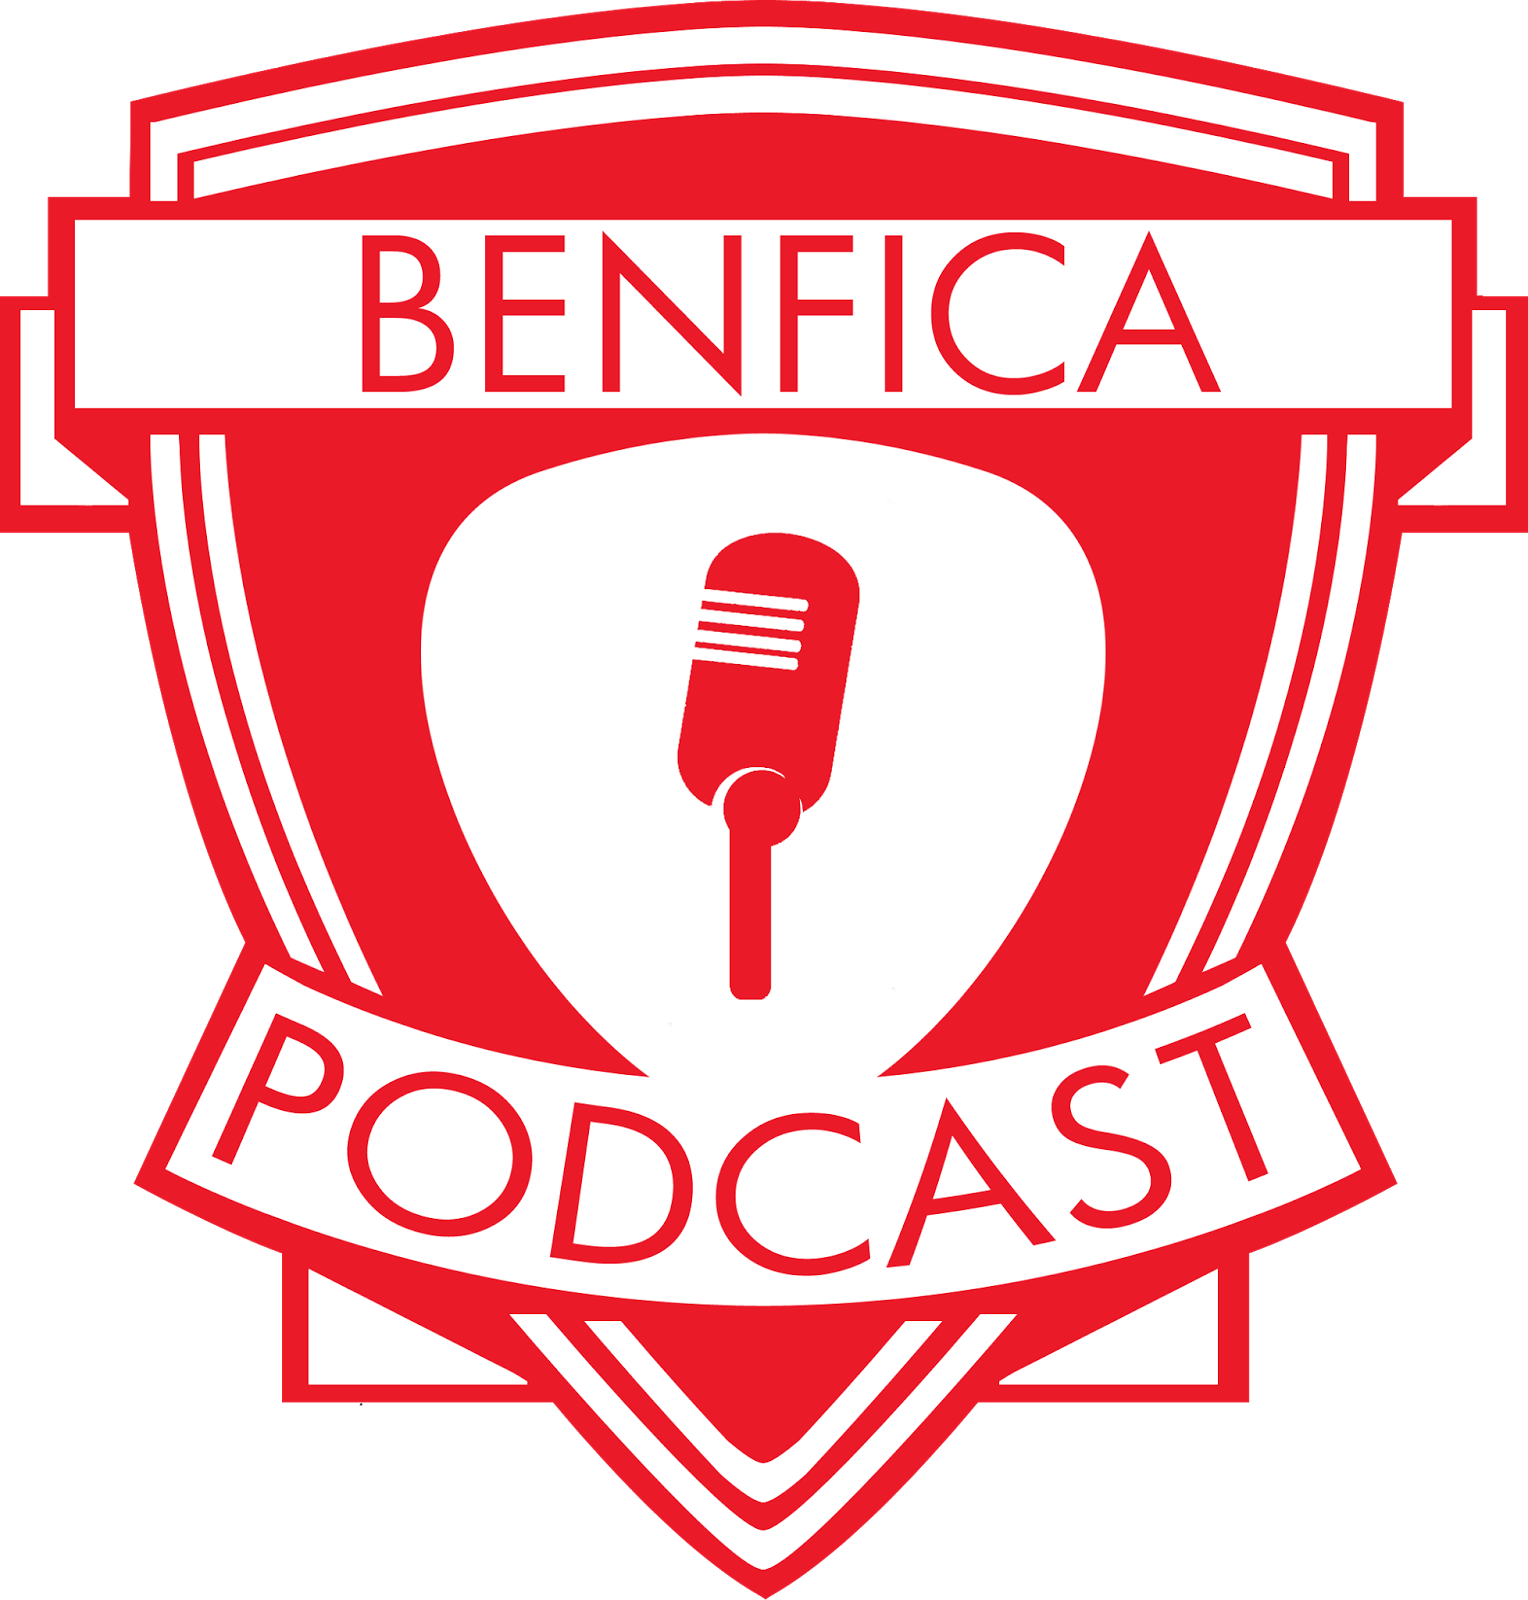 Benfica Podcast